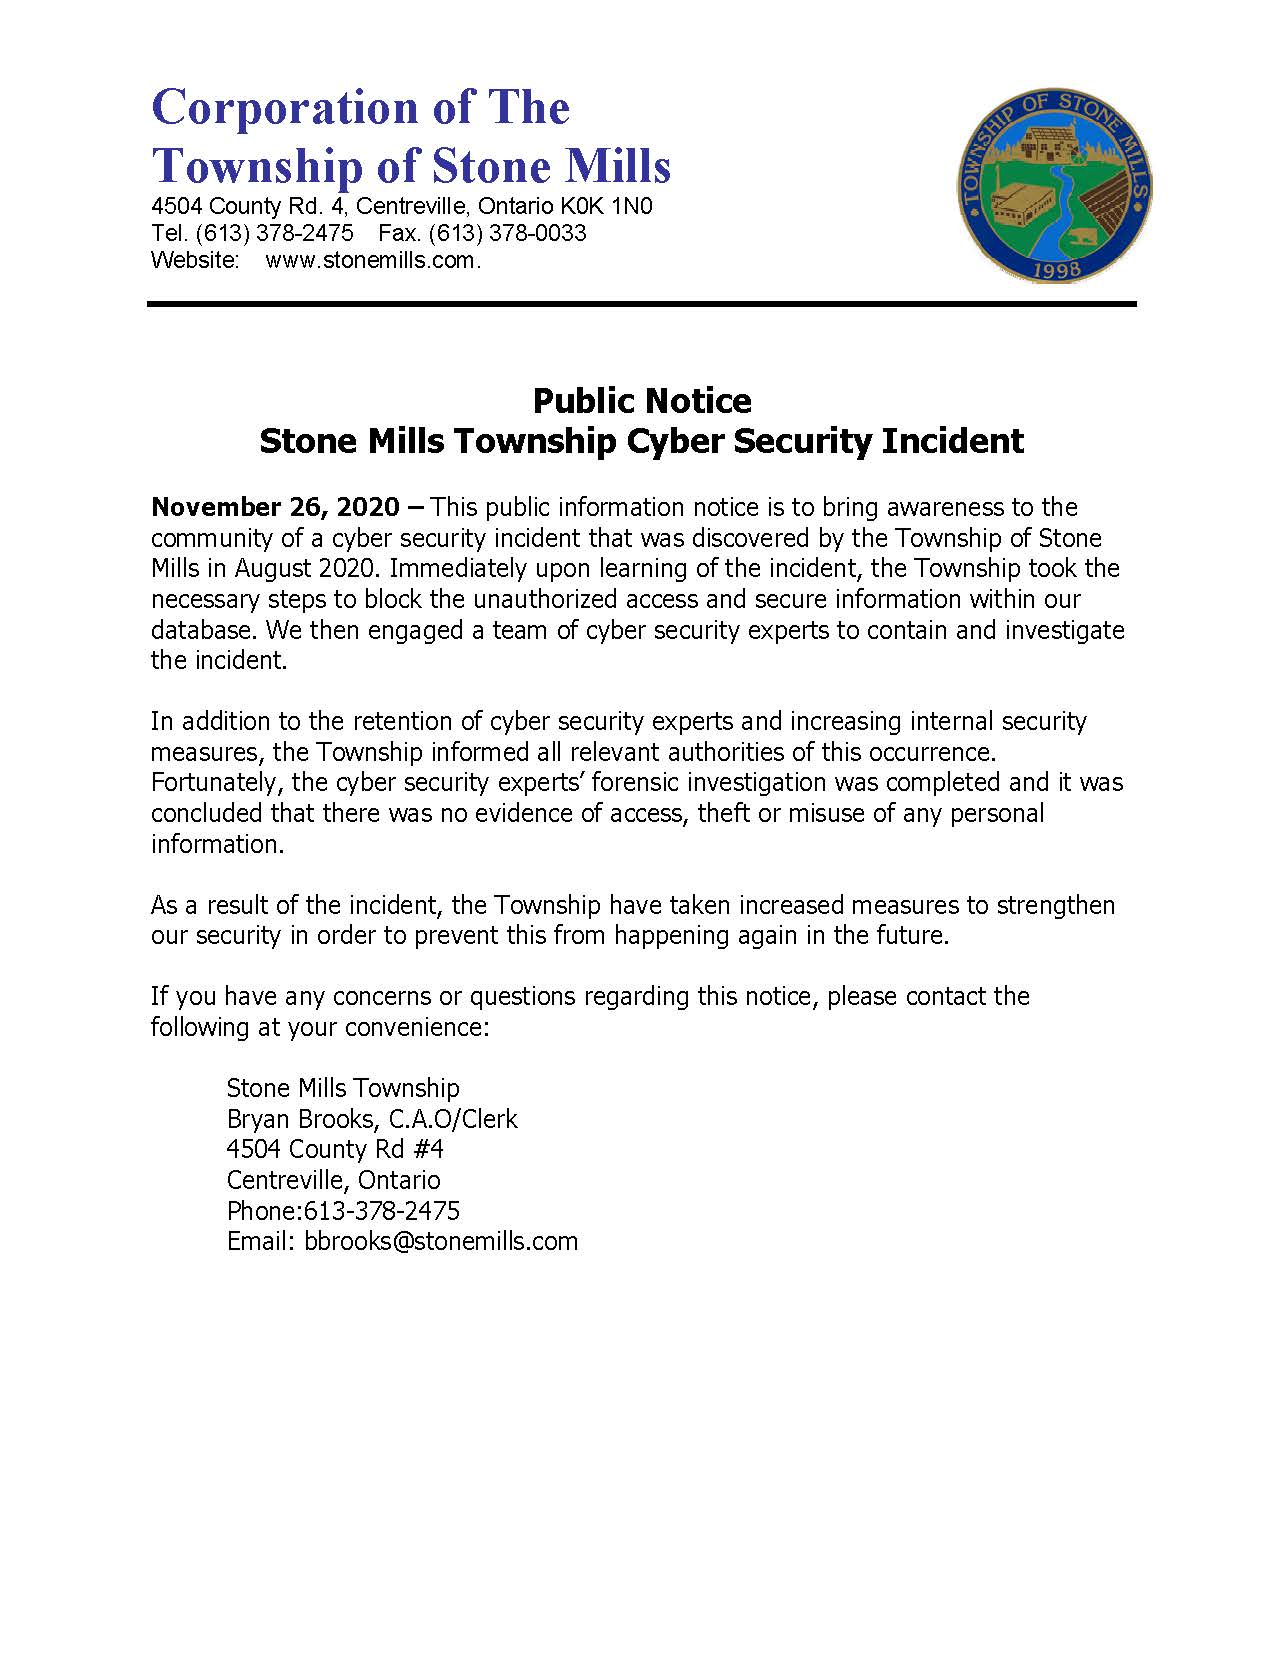 public notice of cyber security incident